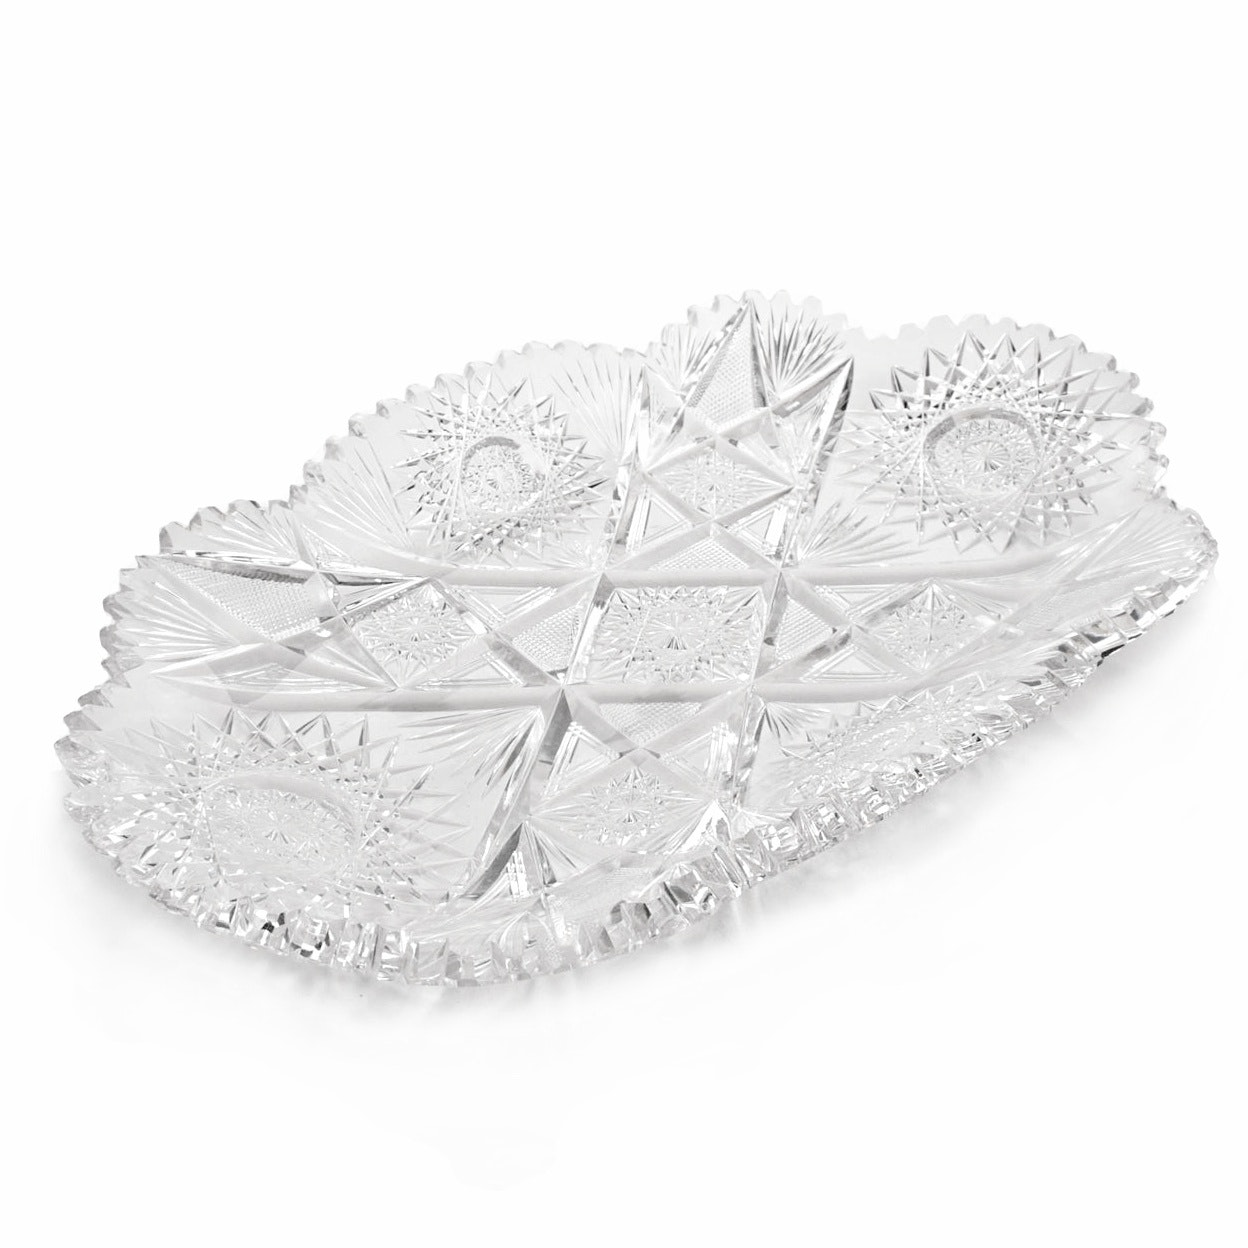 Antique Cut Crystal Serving Dish